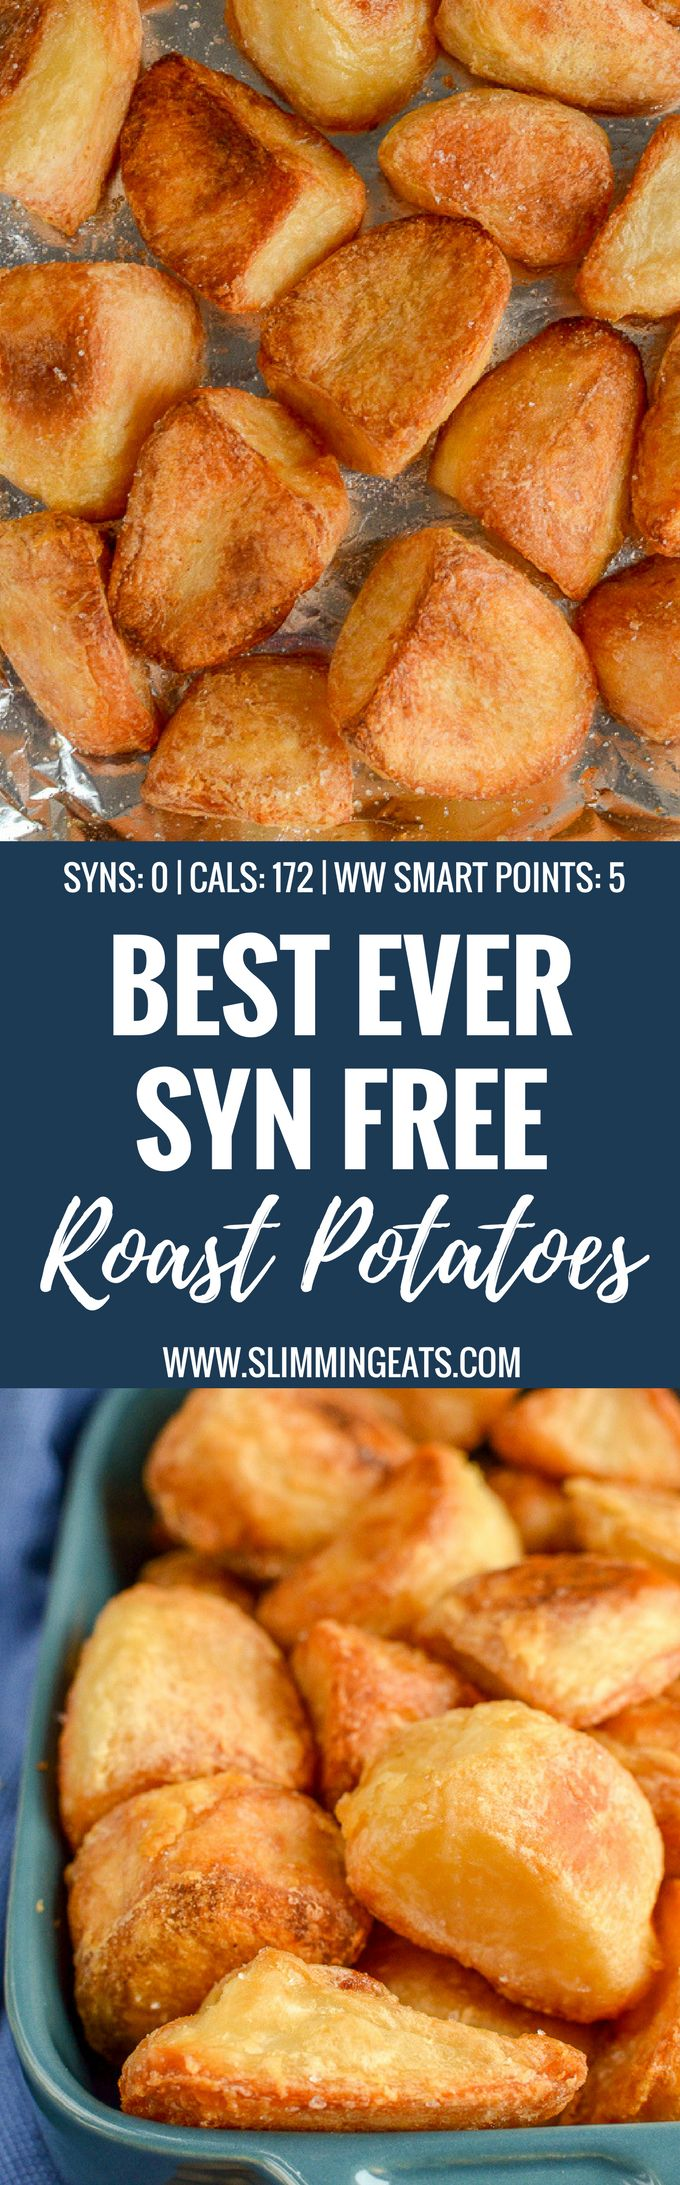 Slimming Eats Best Ever Syn Free Roast Potatoes - gluten free, dairy free, vegetarian, Slimming World or Weight Watchers friendly